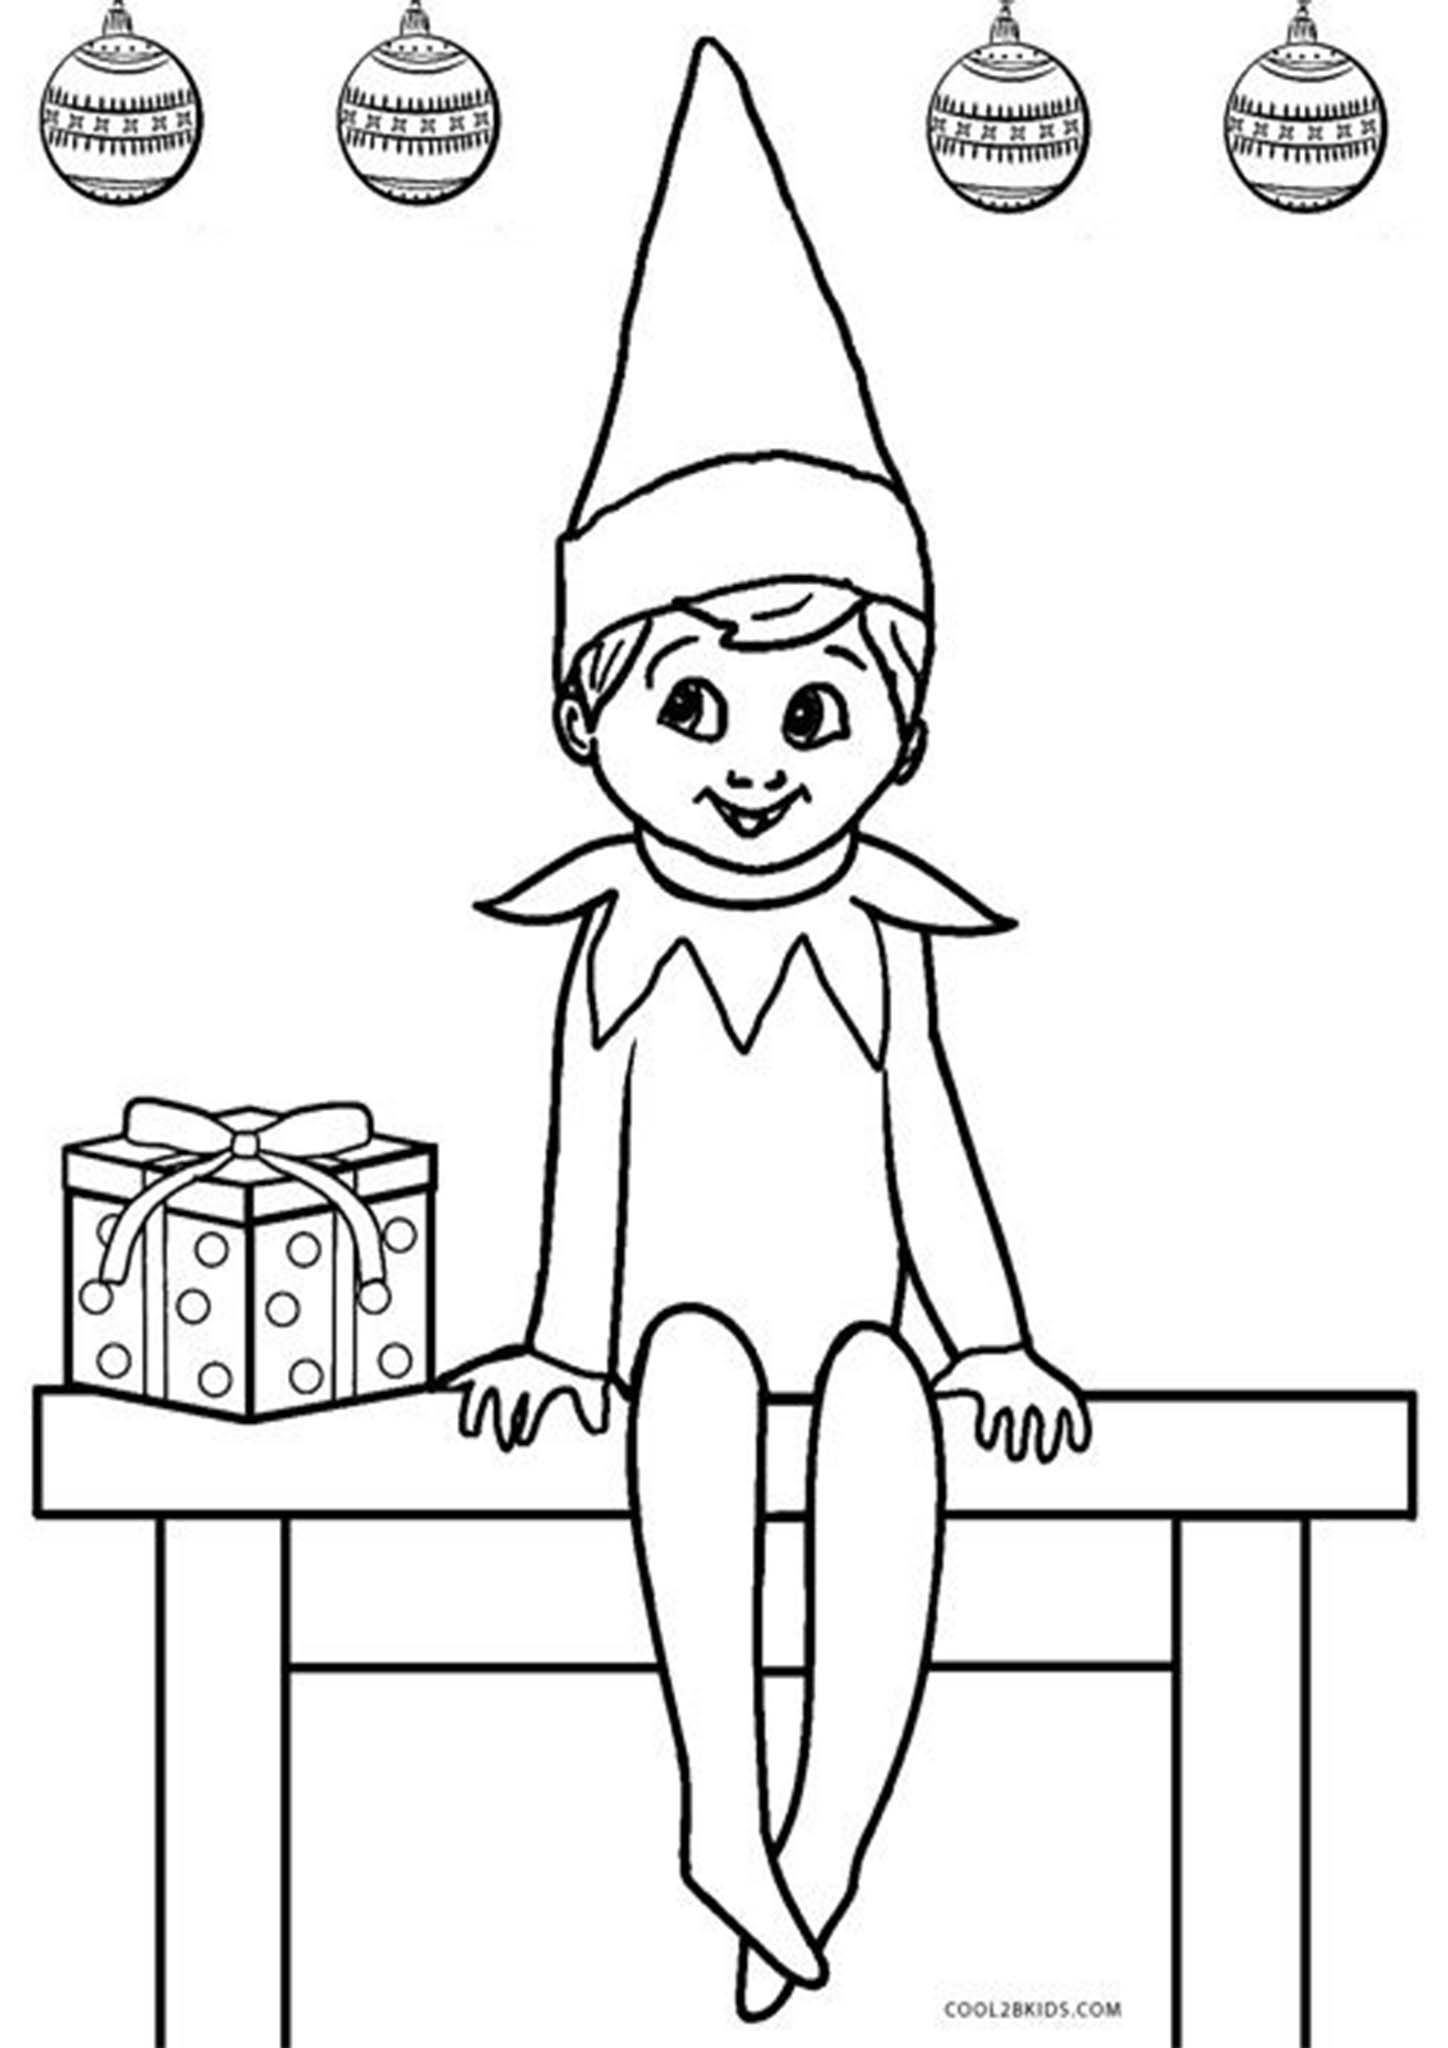 Free Printable Elf On The Shelf Coloring Pages Printable Christmas Coloring Pages Christmas Coloring Printables Christmas Coloring Sheets